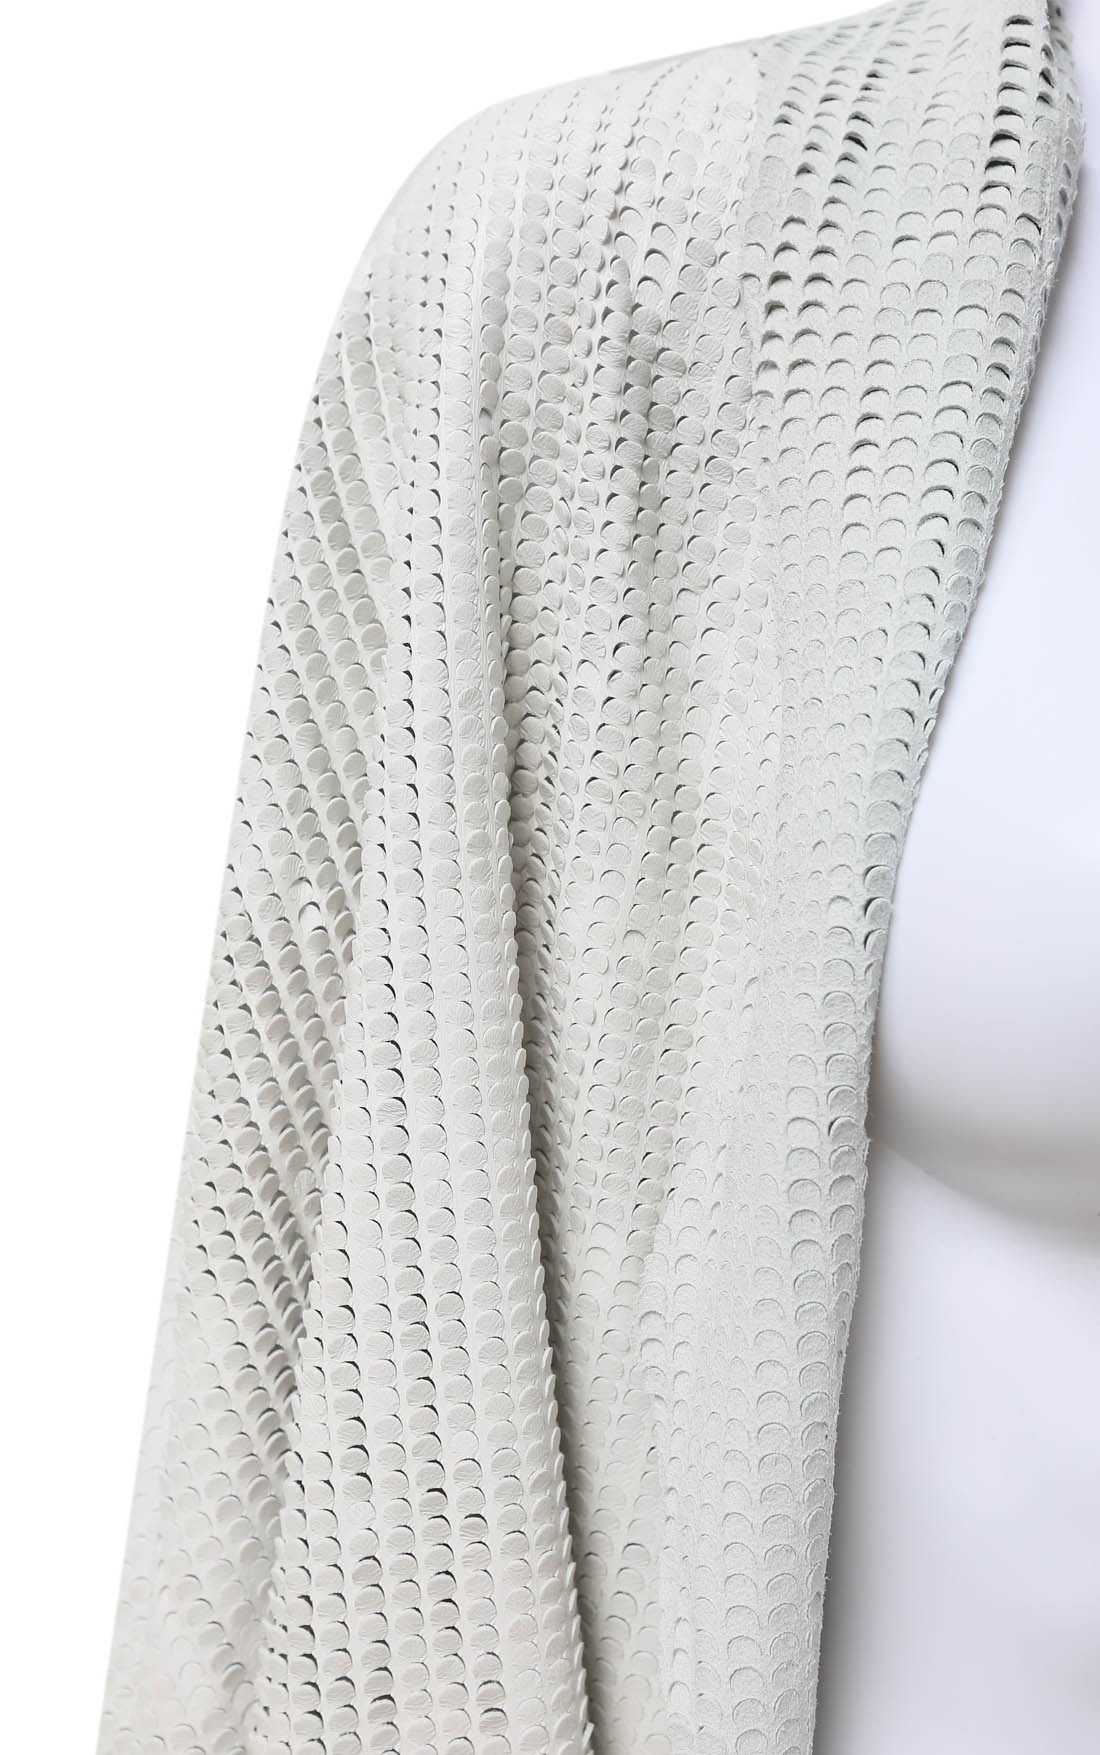 Claudio Cutuli - White Lasered Leather Scarf with Chain (AIXA-32)